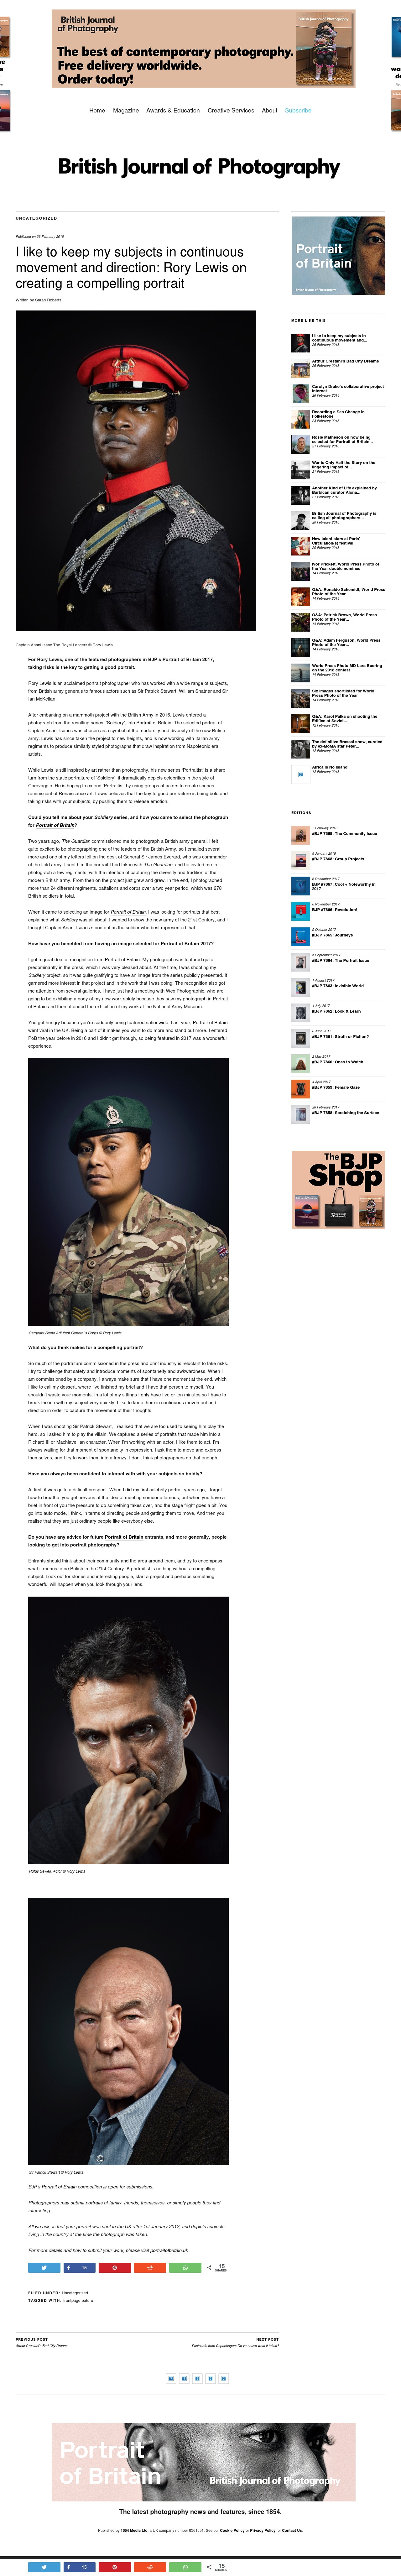 British Journal of Photography February 2018 Interview